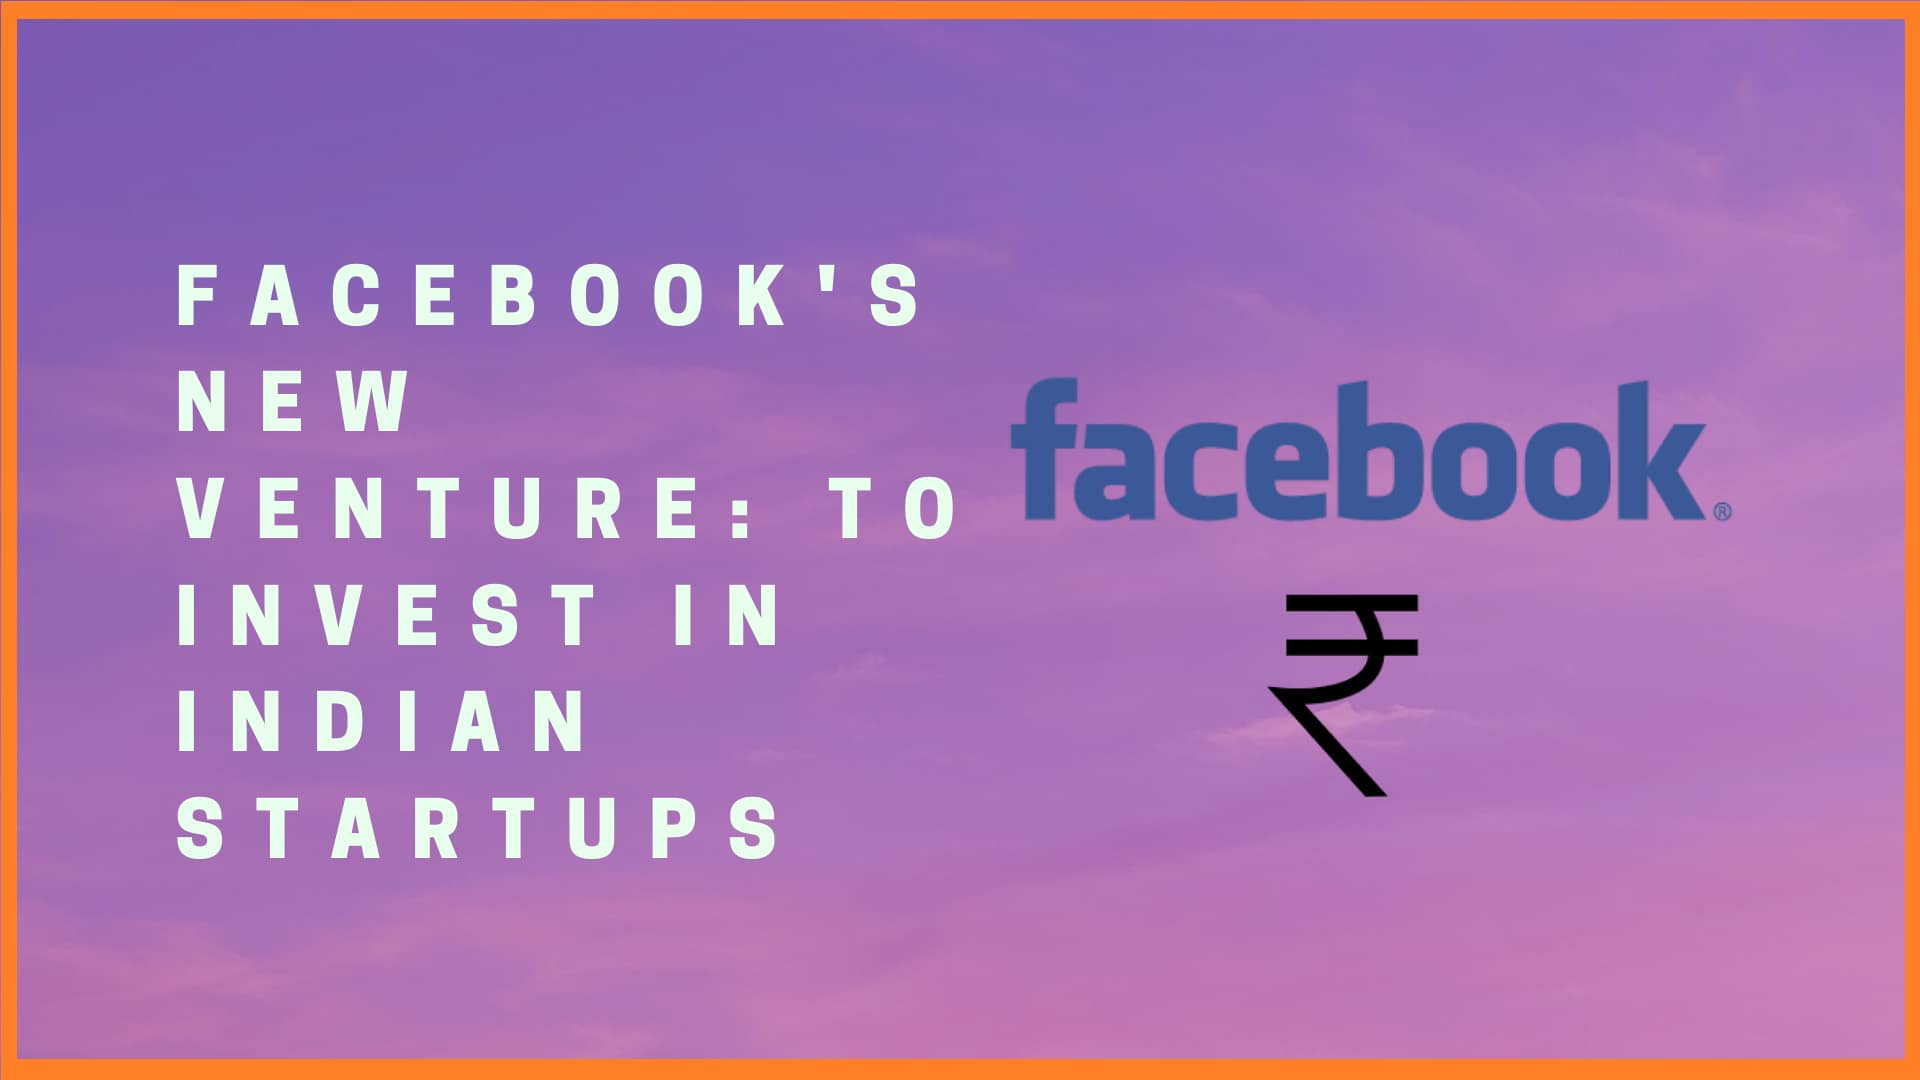 Facebook's New Venture: To Invest in Indian Startups